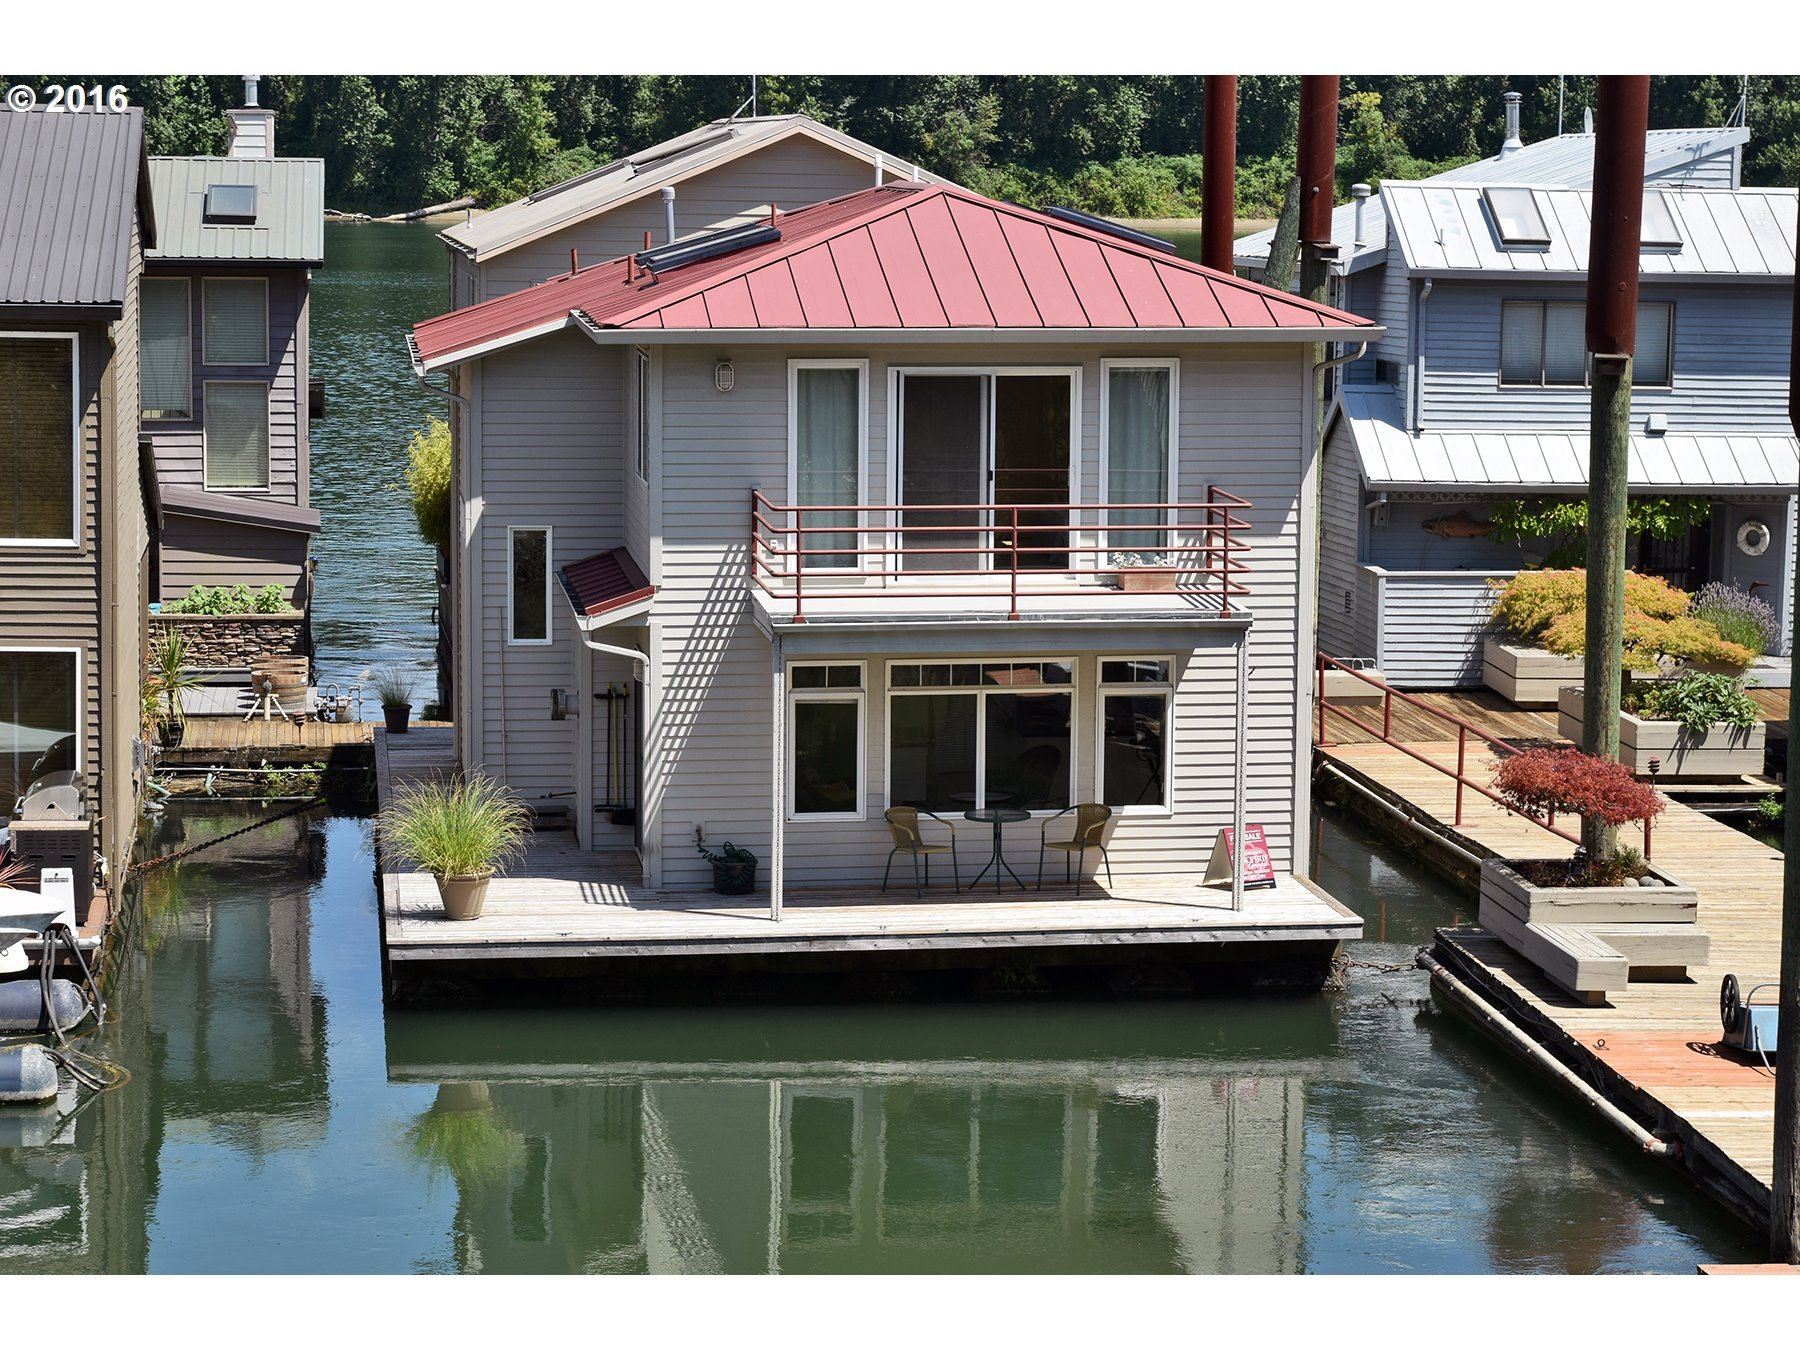 Floating homes house boats jane betts stover realtor Floating homes portland